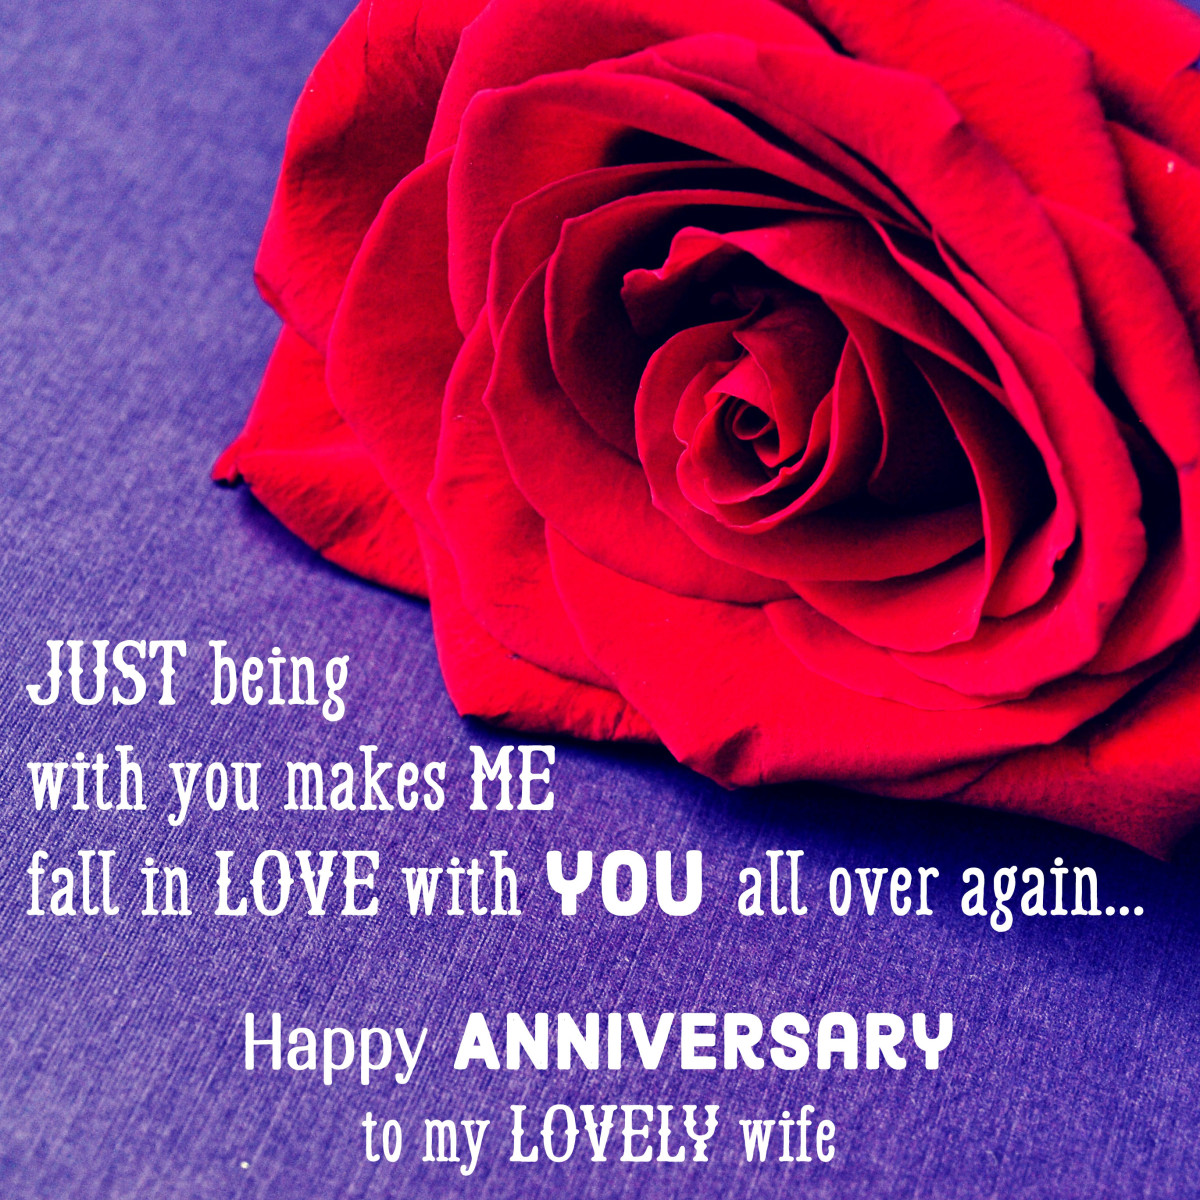 Wedding anniversary message for your wife: Just being with you makes me fall in love with you all over again.